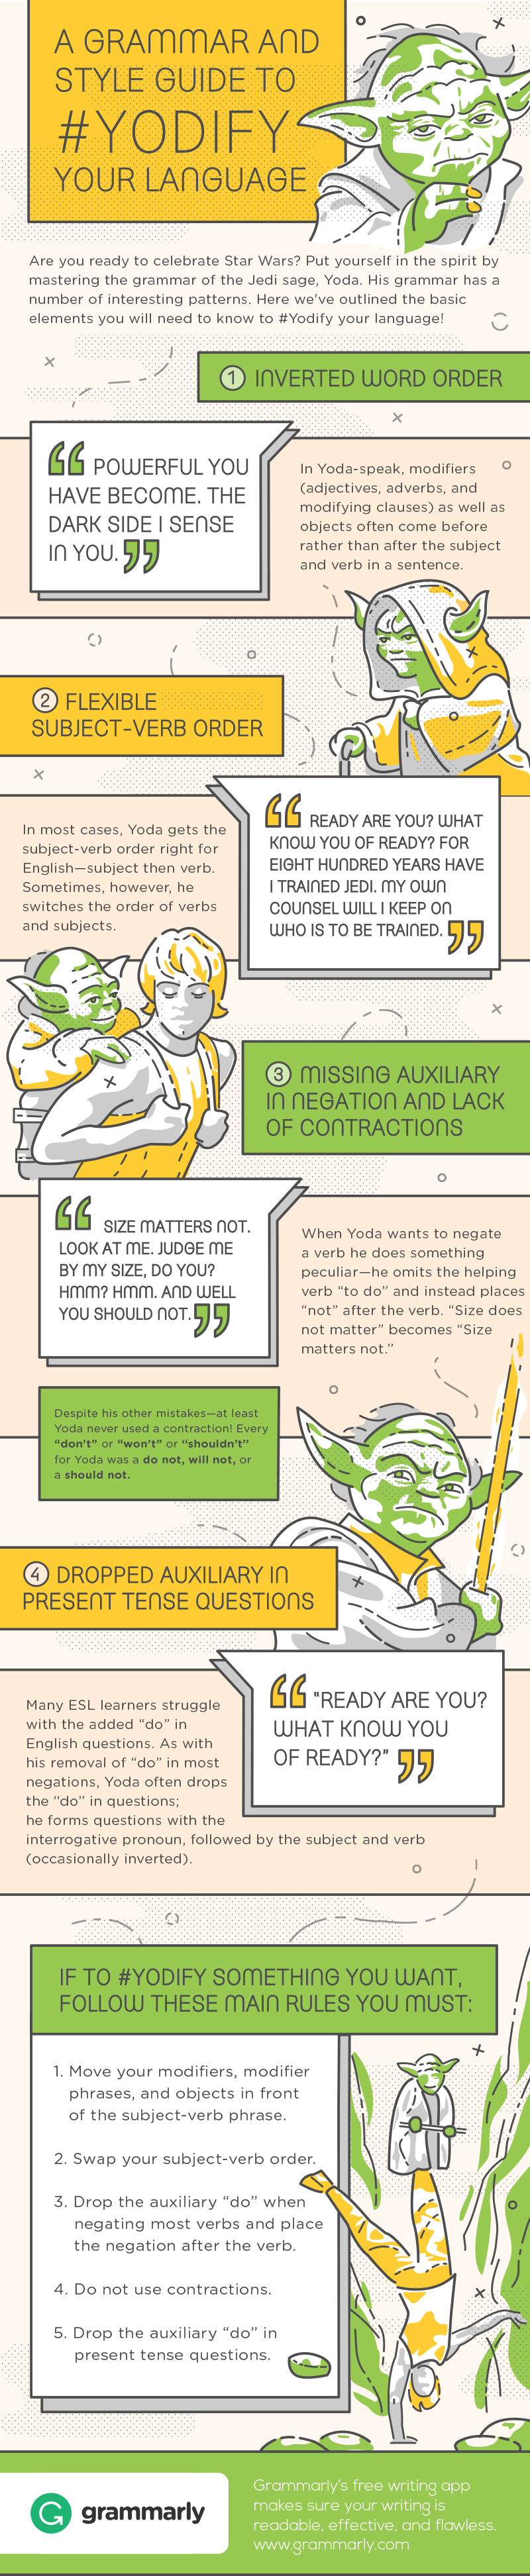 Yoda language and grammar infographic, yodaspeak